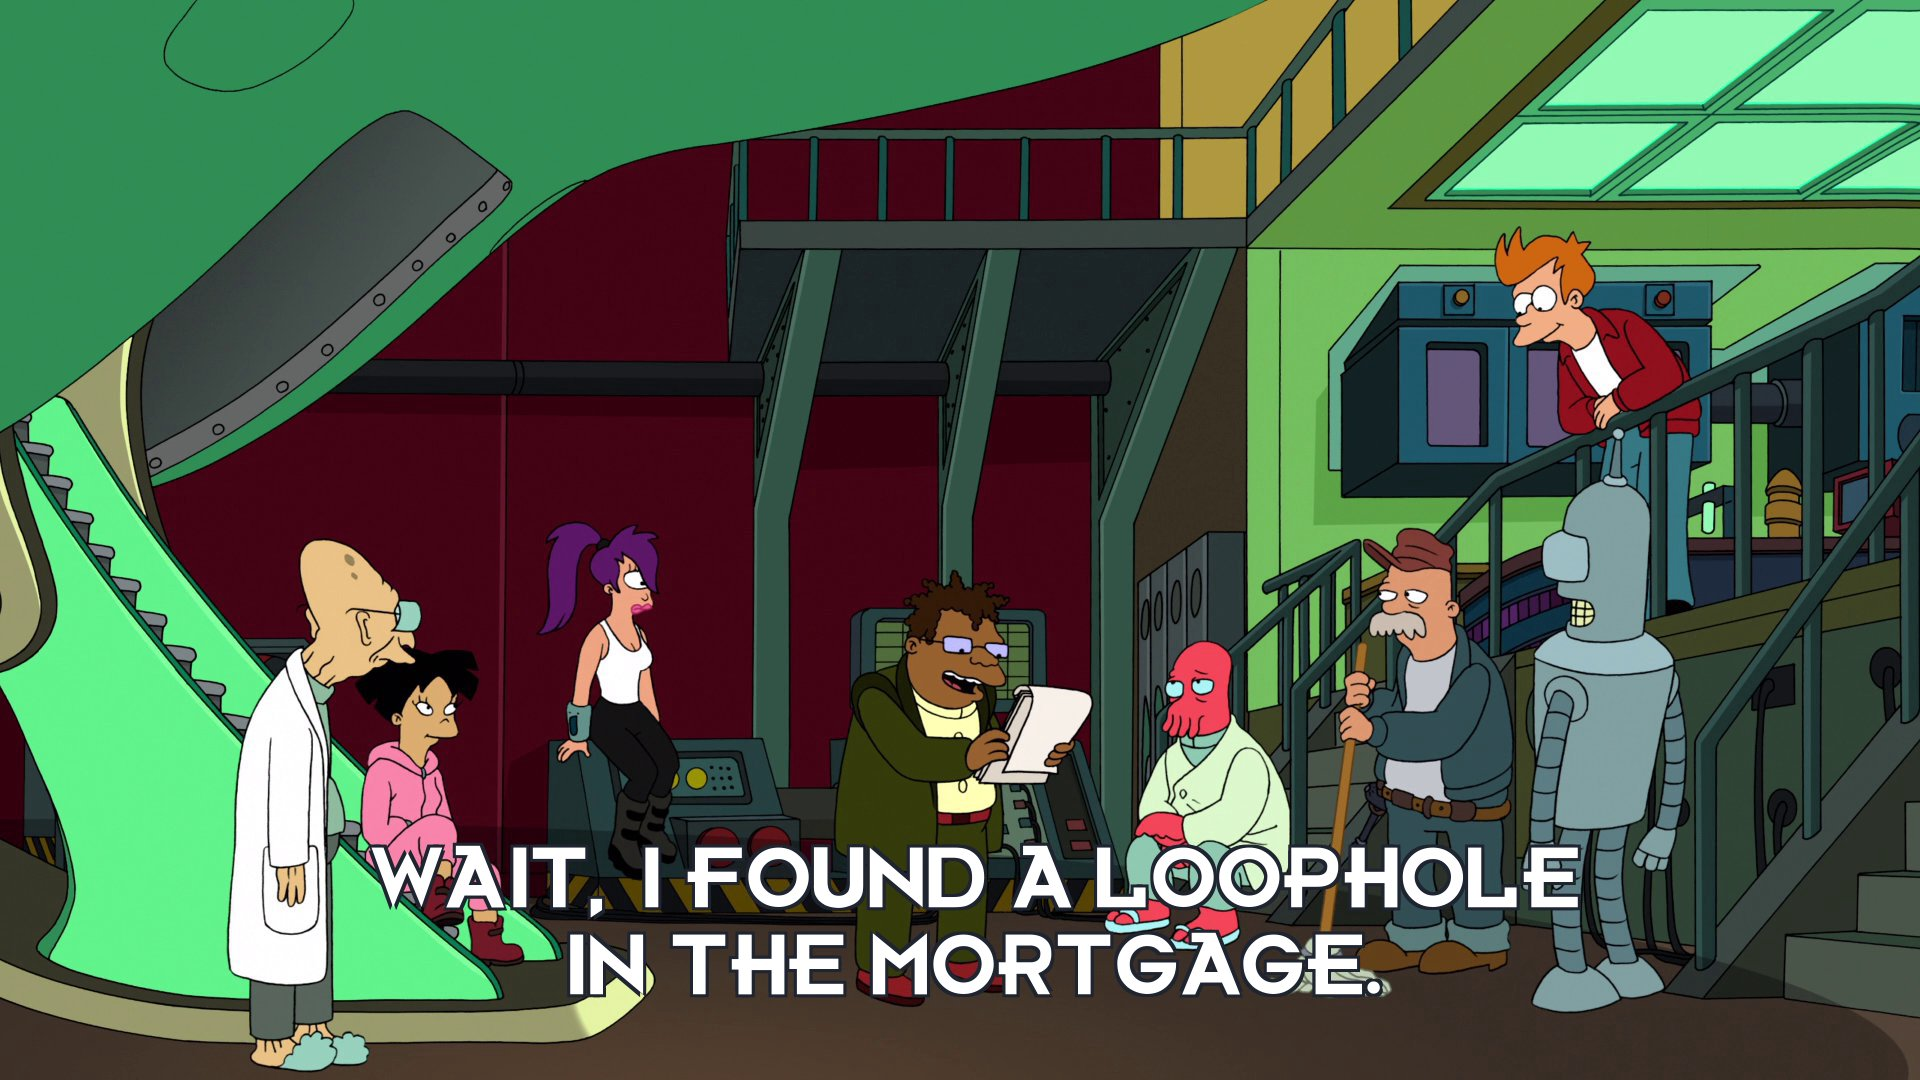 Hermes Conrad: Wait, I found a loophole in the mortgage.